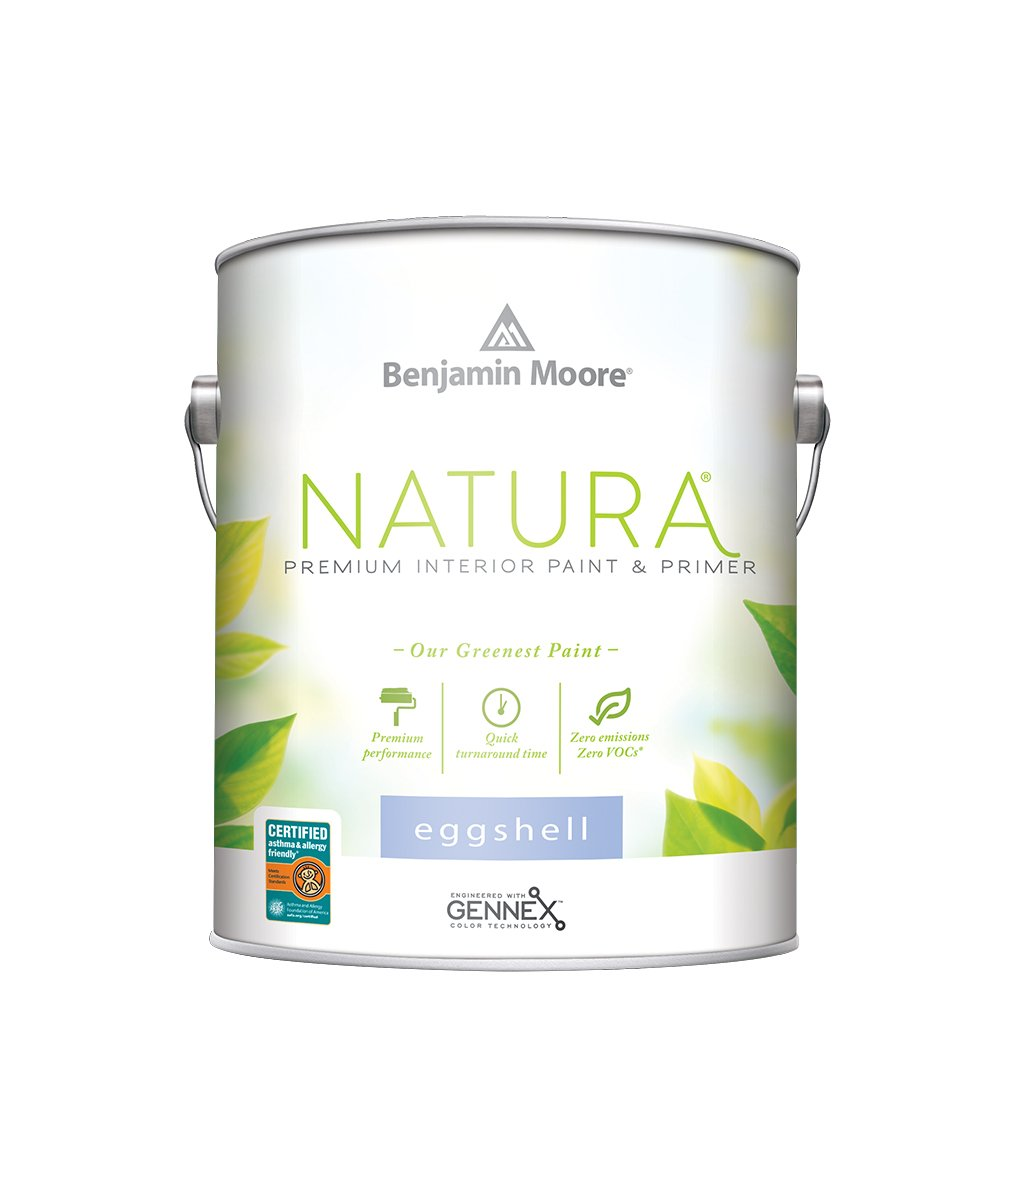 Benjamin Moore Eggshell Natura Paint available at JC Licht.